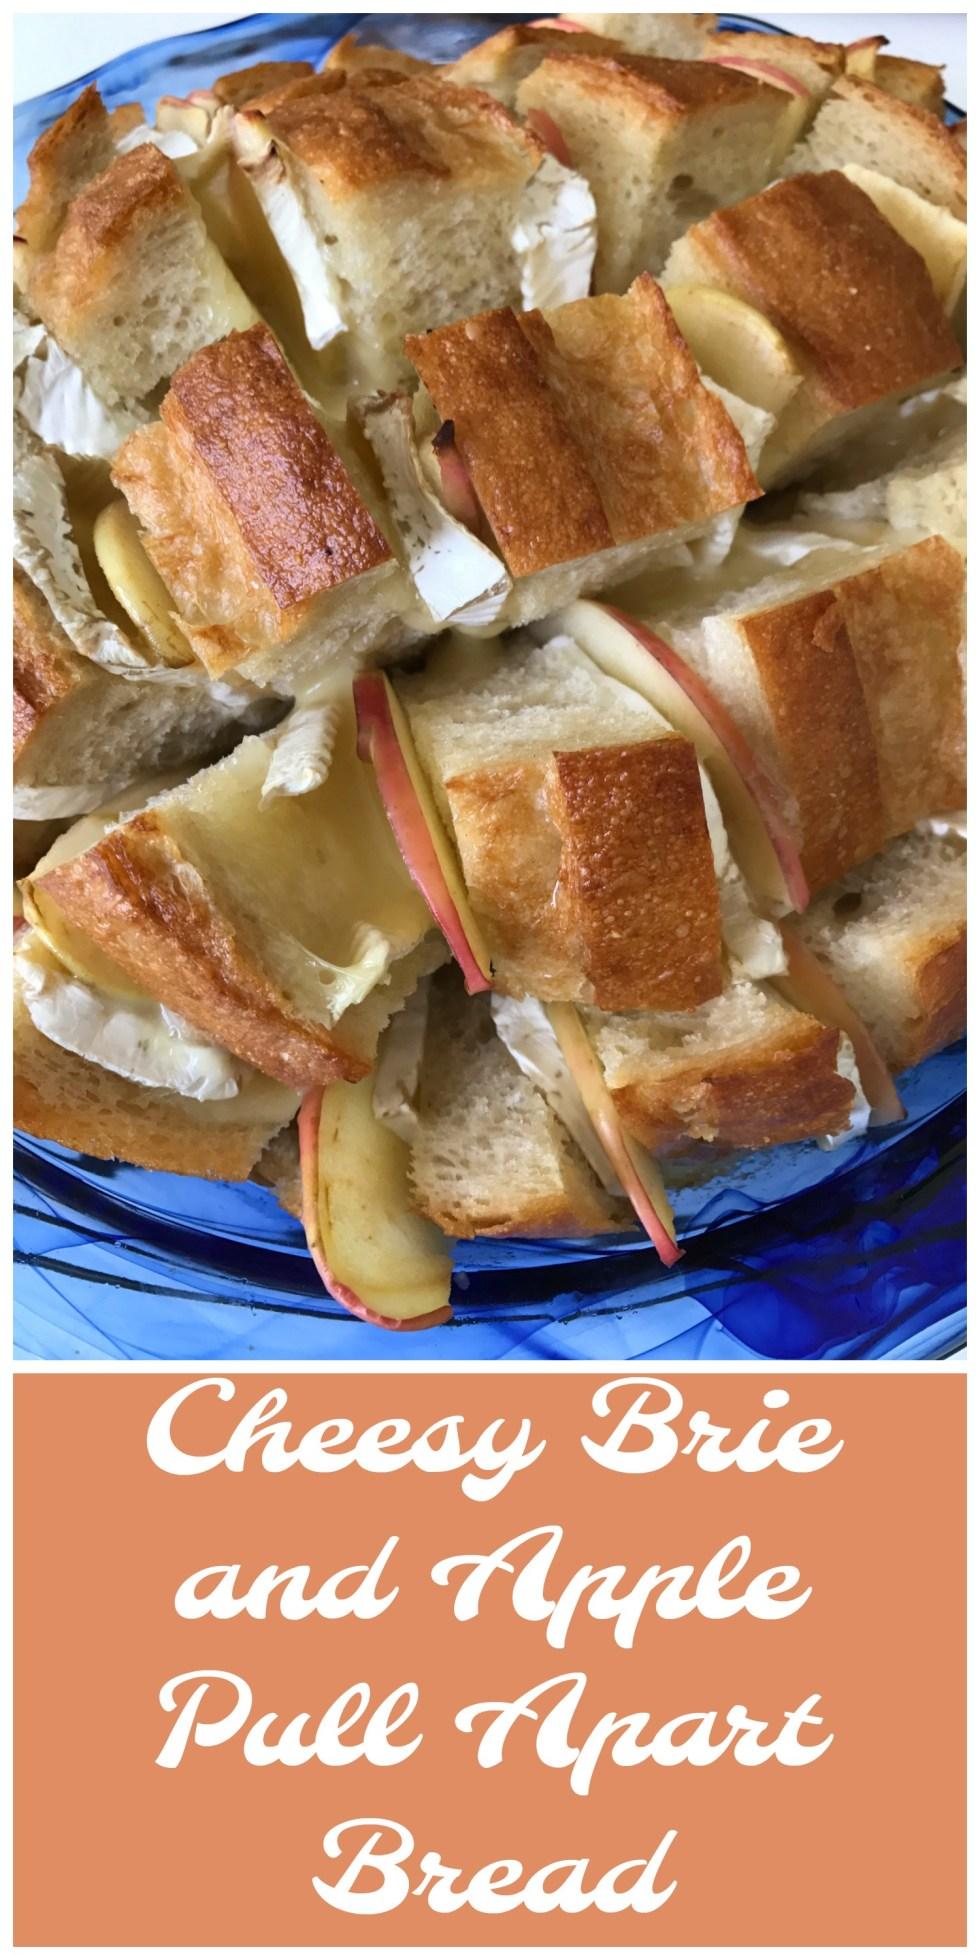 Brie and apples are a delicious pair for this cheesy appetizer.